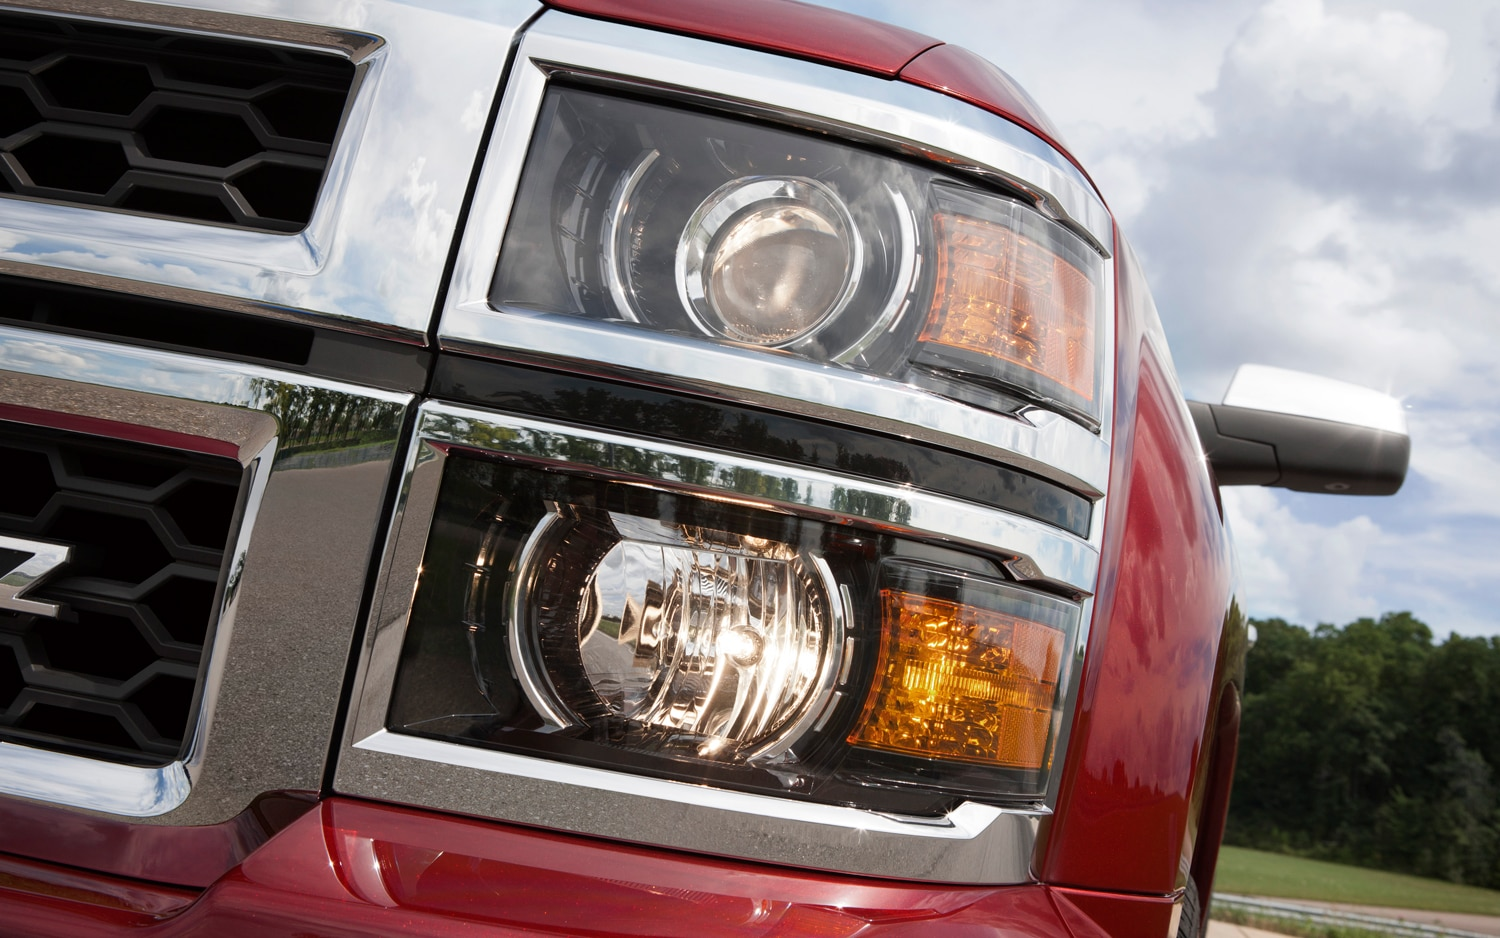 2014 Chevrolet Silverado Head Light